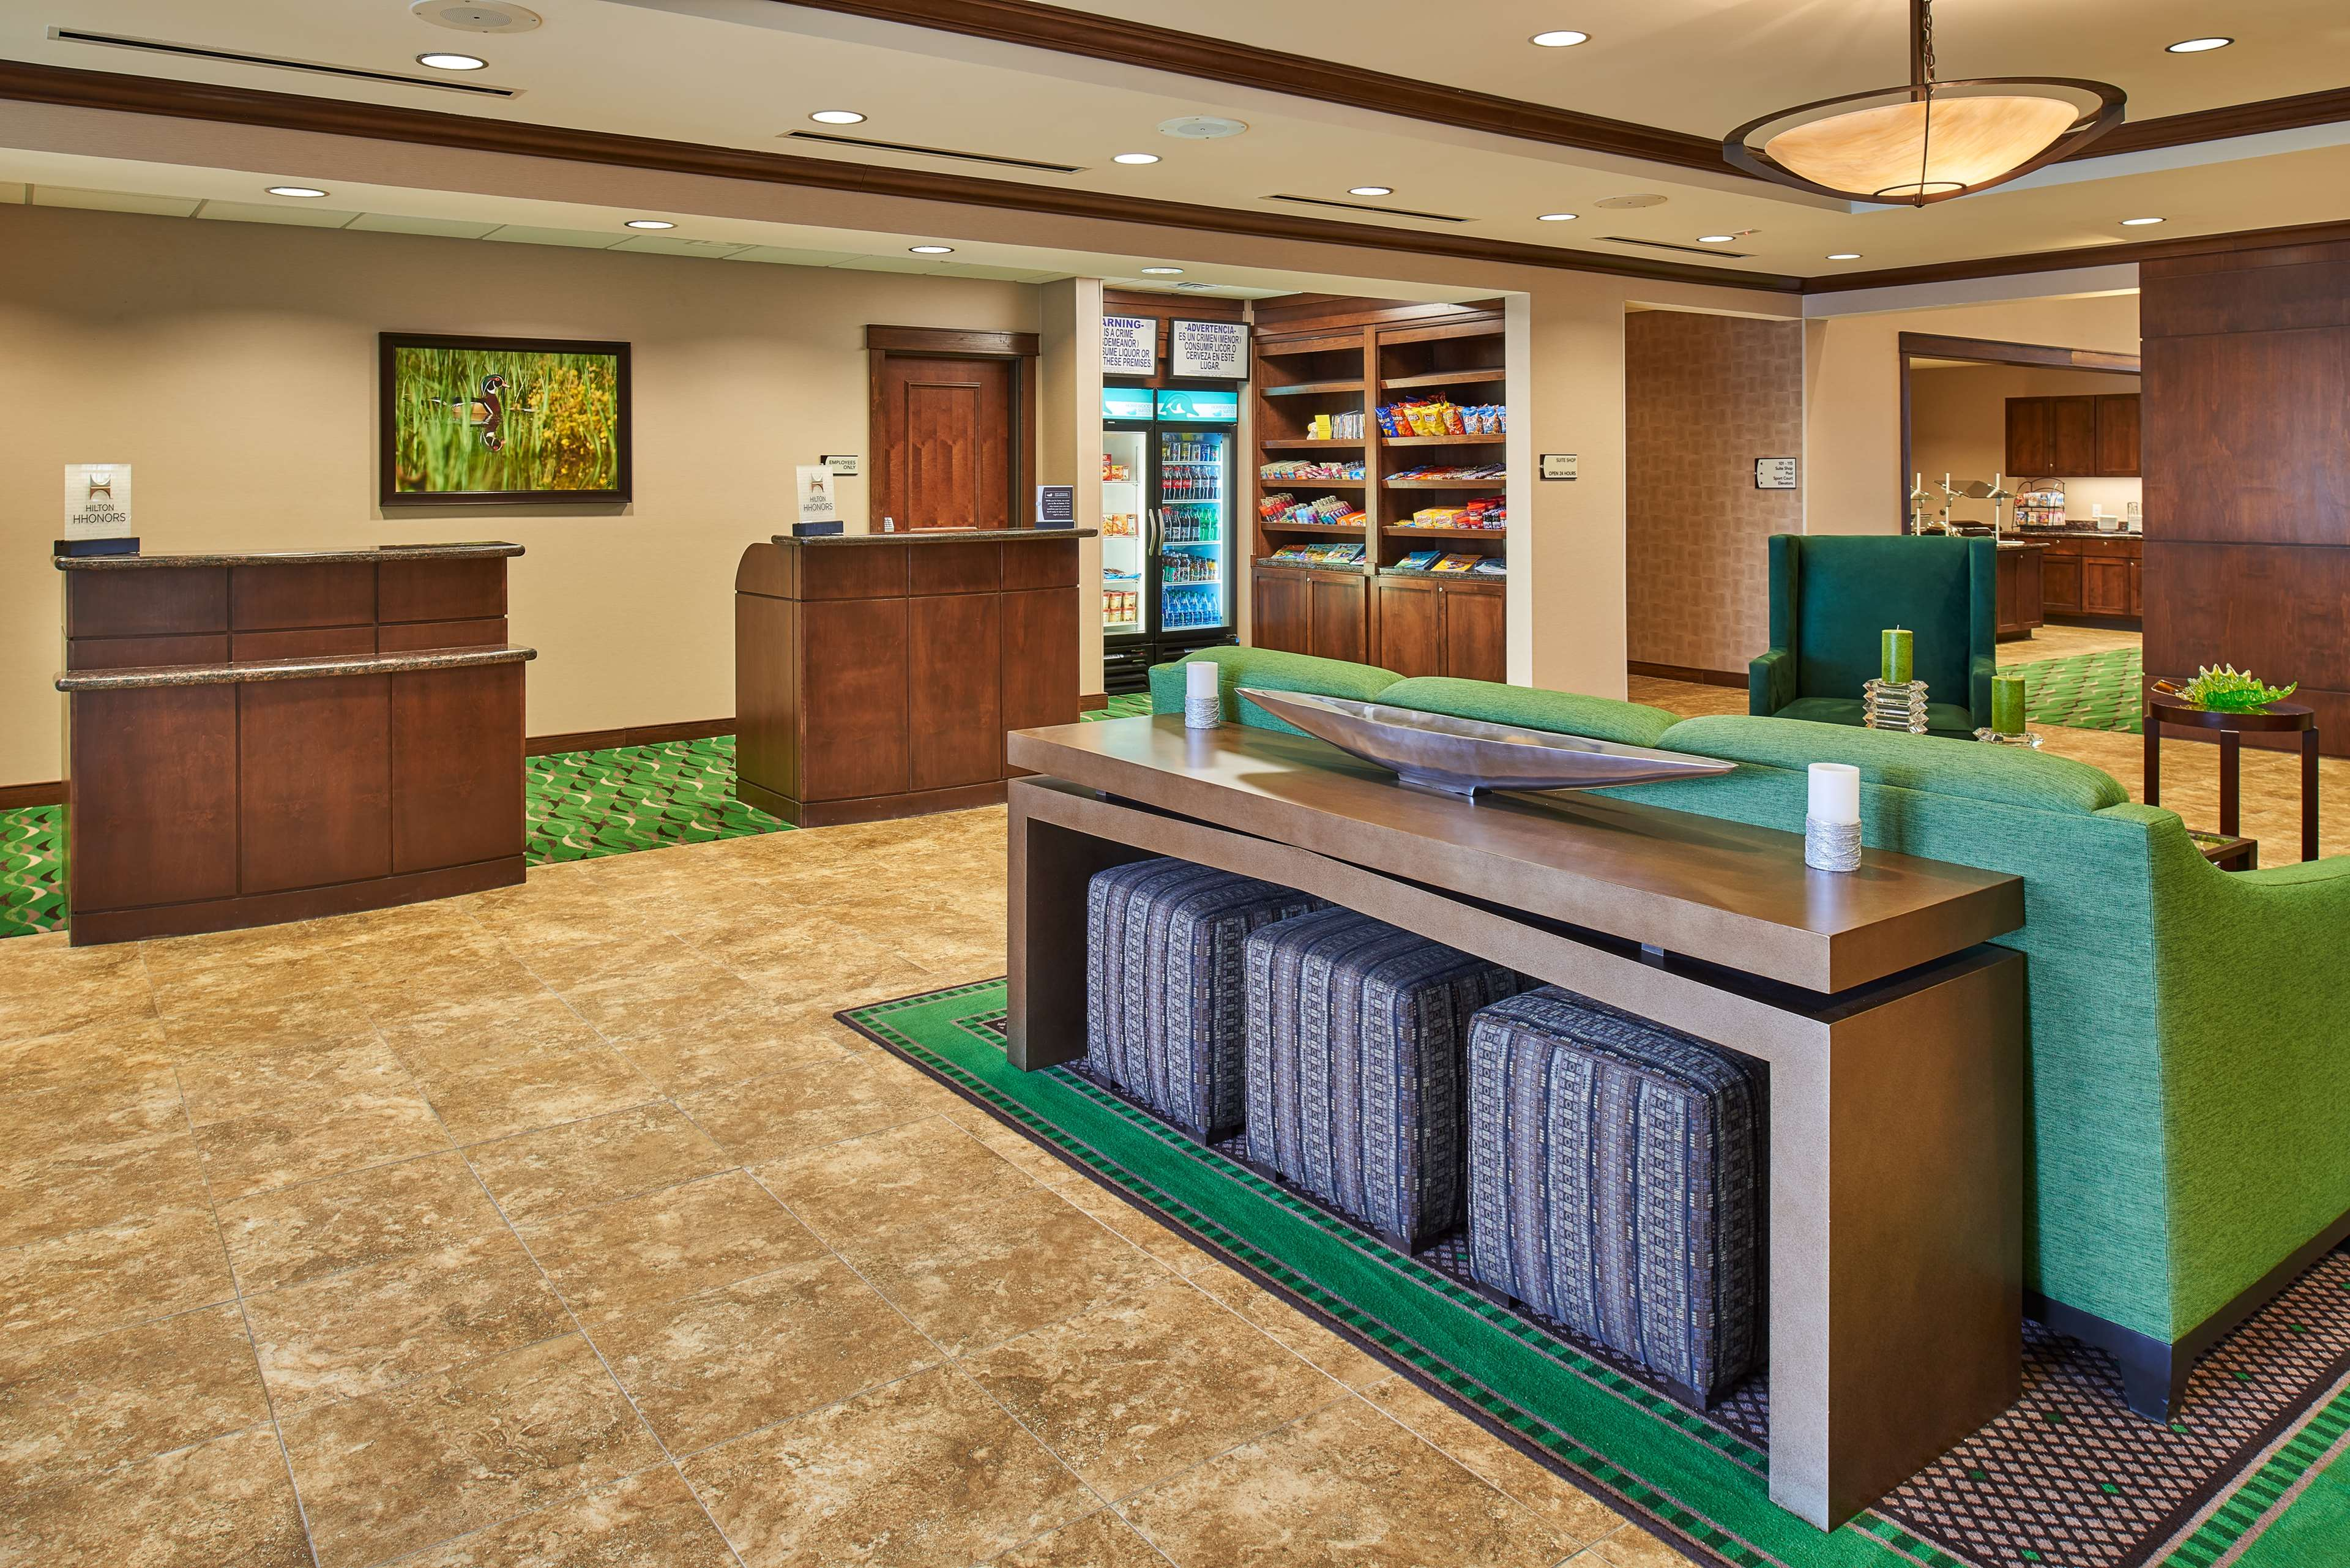 Homewood Suites by Hilton Odessa image 3